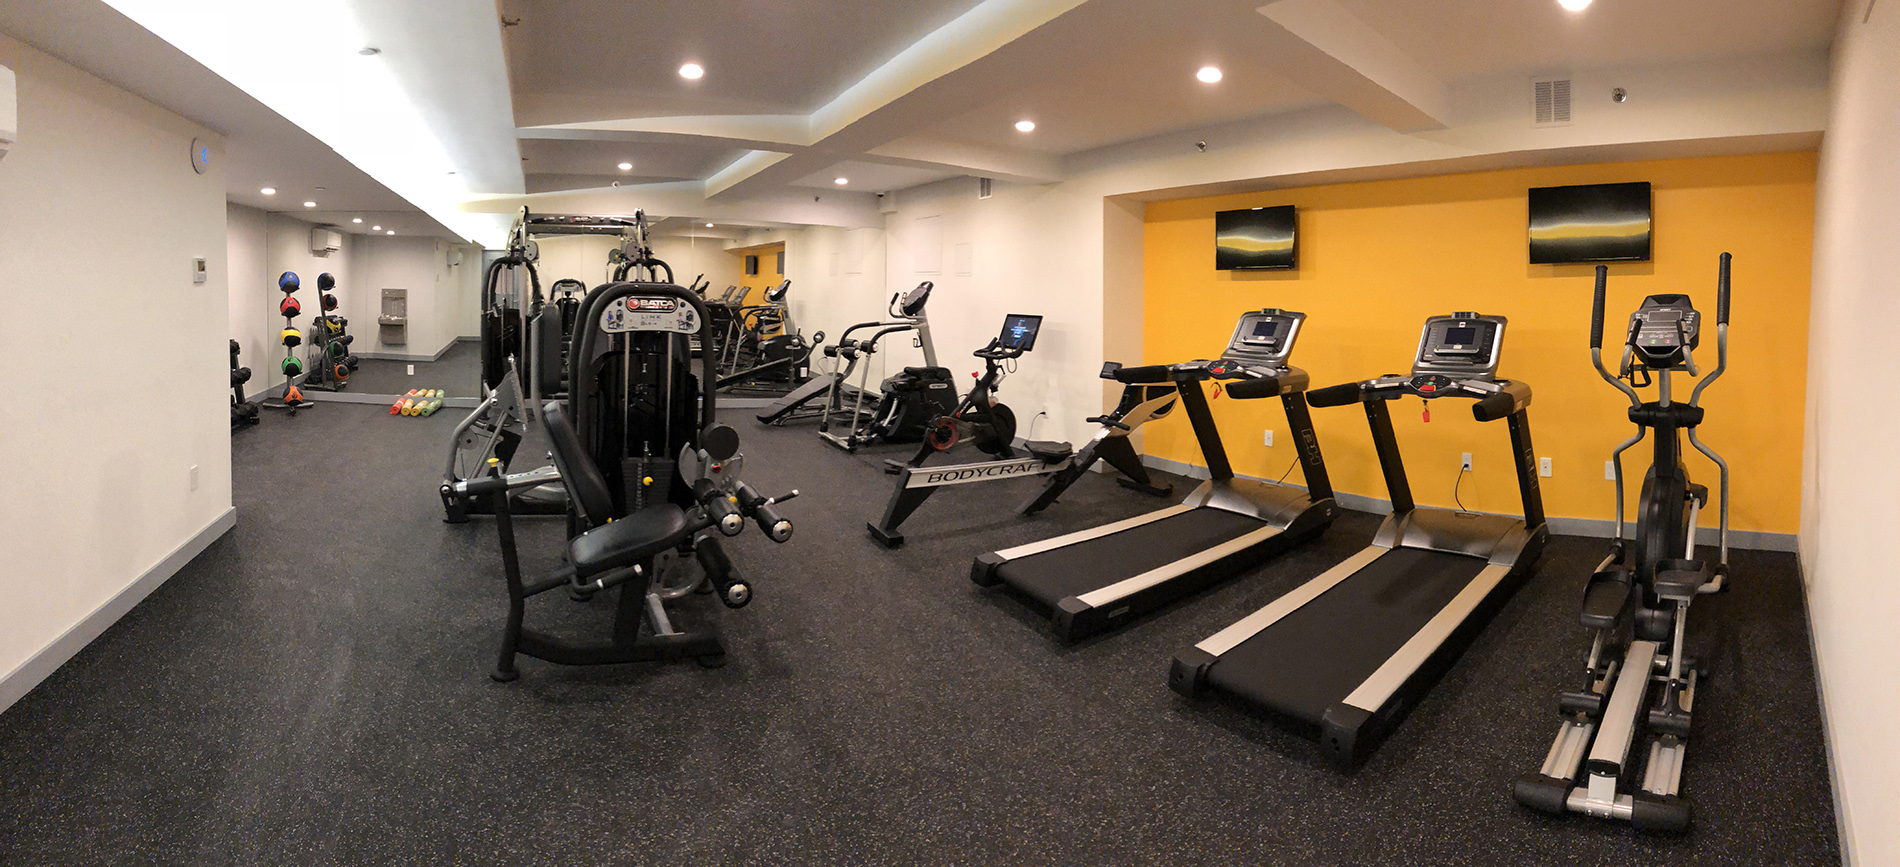 Fitness Center with Professional Equipment